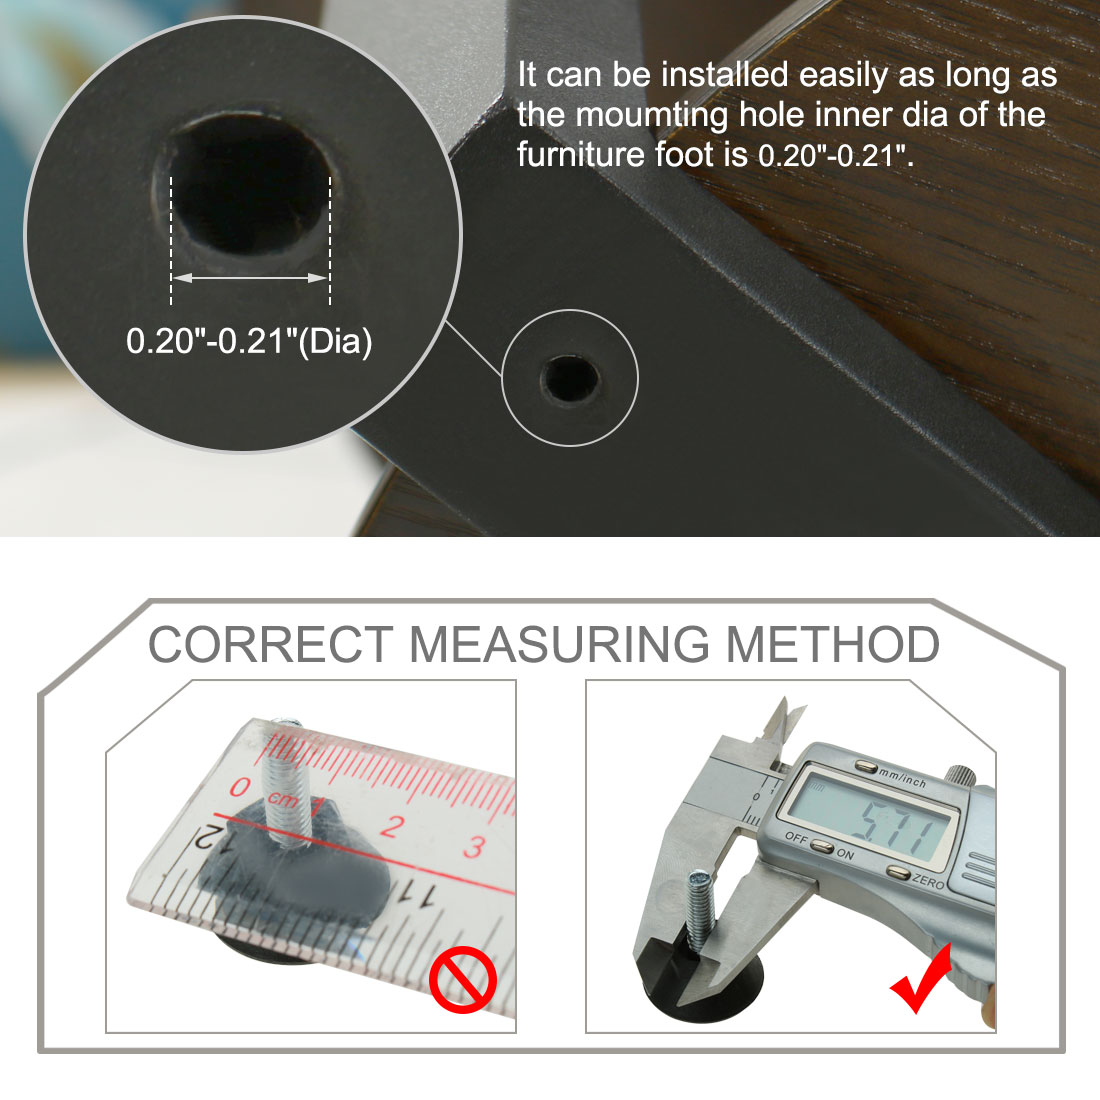 M6 x 20 x 25mm Adjustable Leveling Feet Floor Protector for Table Leg 4pcs - image 6 of 7